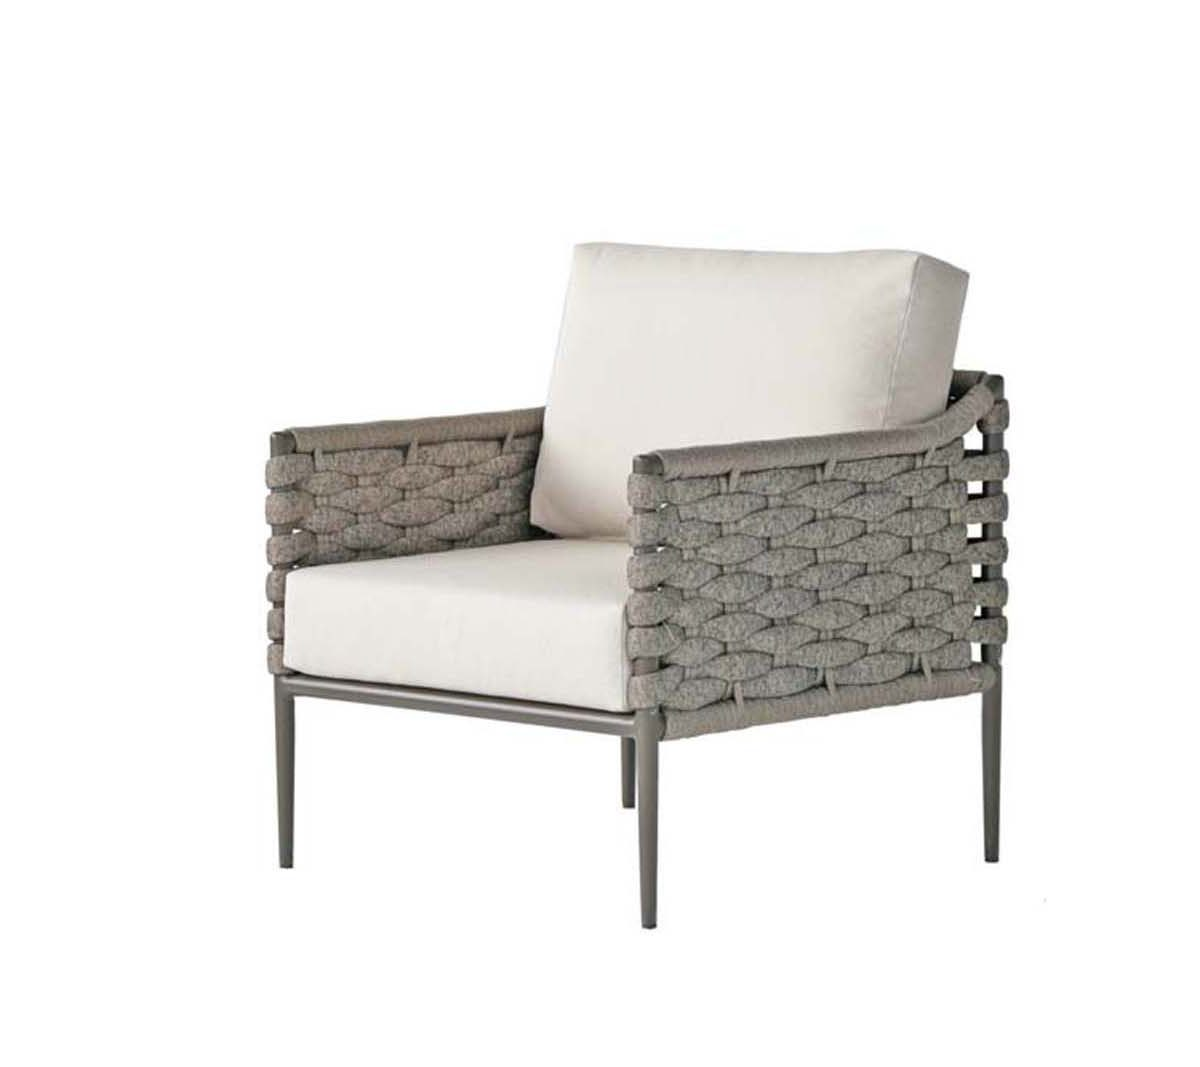 The Bogota club chair in grey rope weave and light colored cushions.